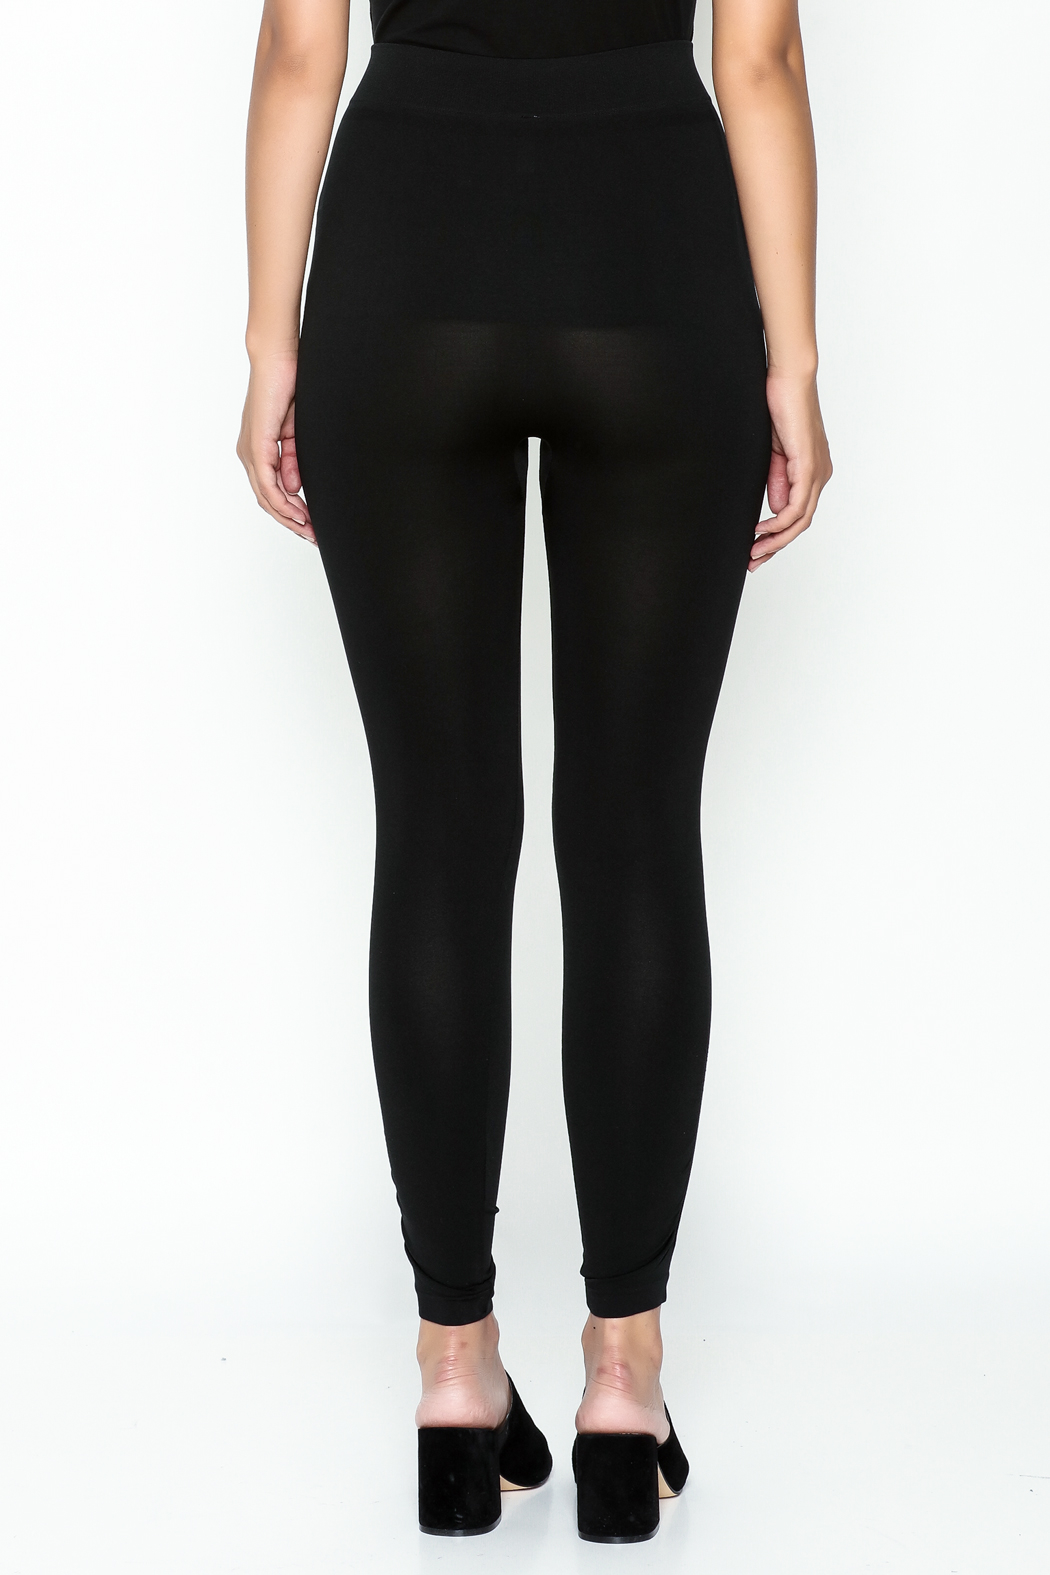 Private Label Ruched Leggings - Back Cropped Image